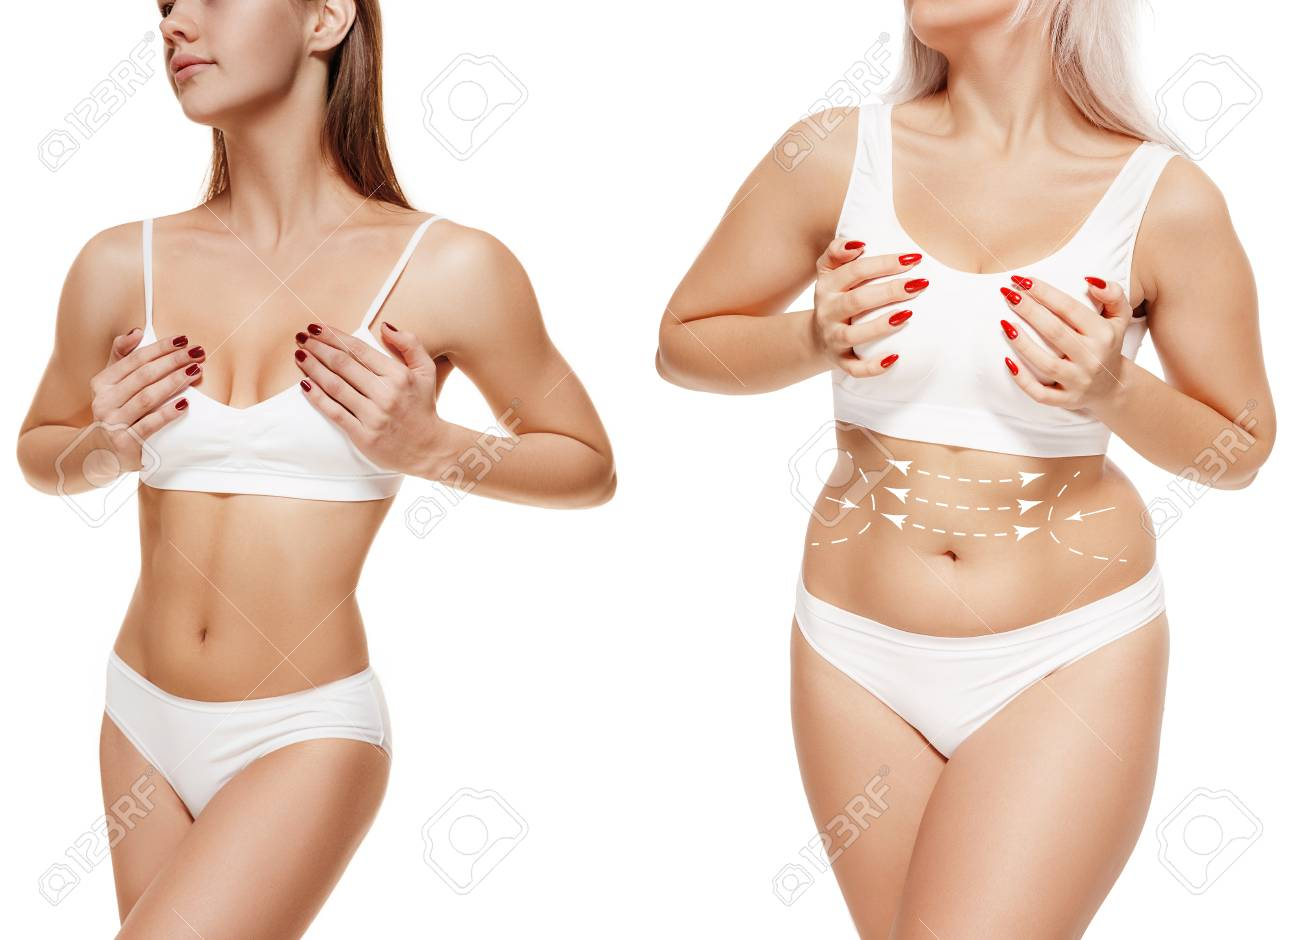 Two Young Thick And Thin Women Have Different Figures Comparison Stock Photo Picture And Royalty Free Image Image 116259151